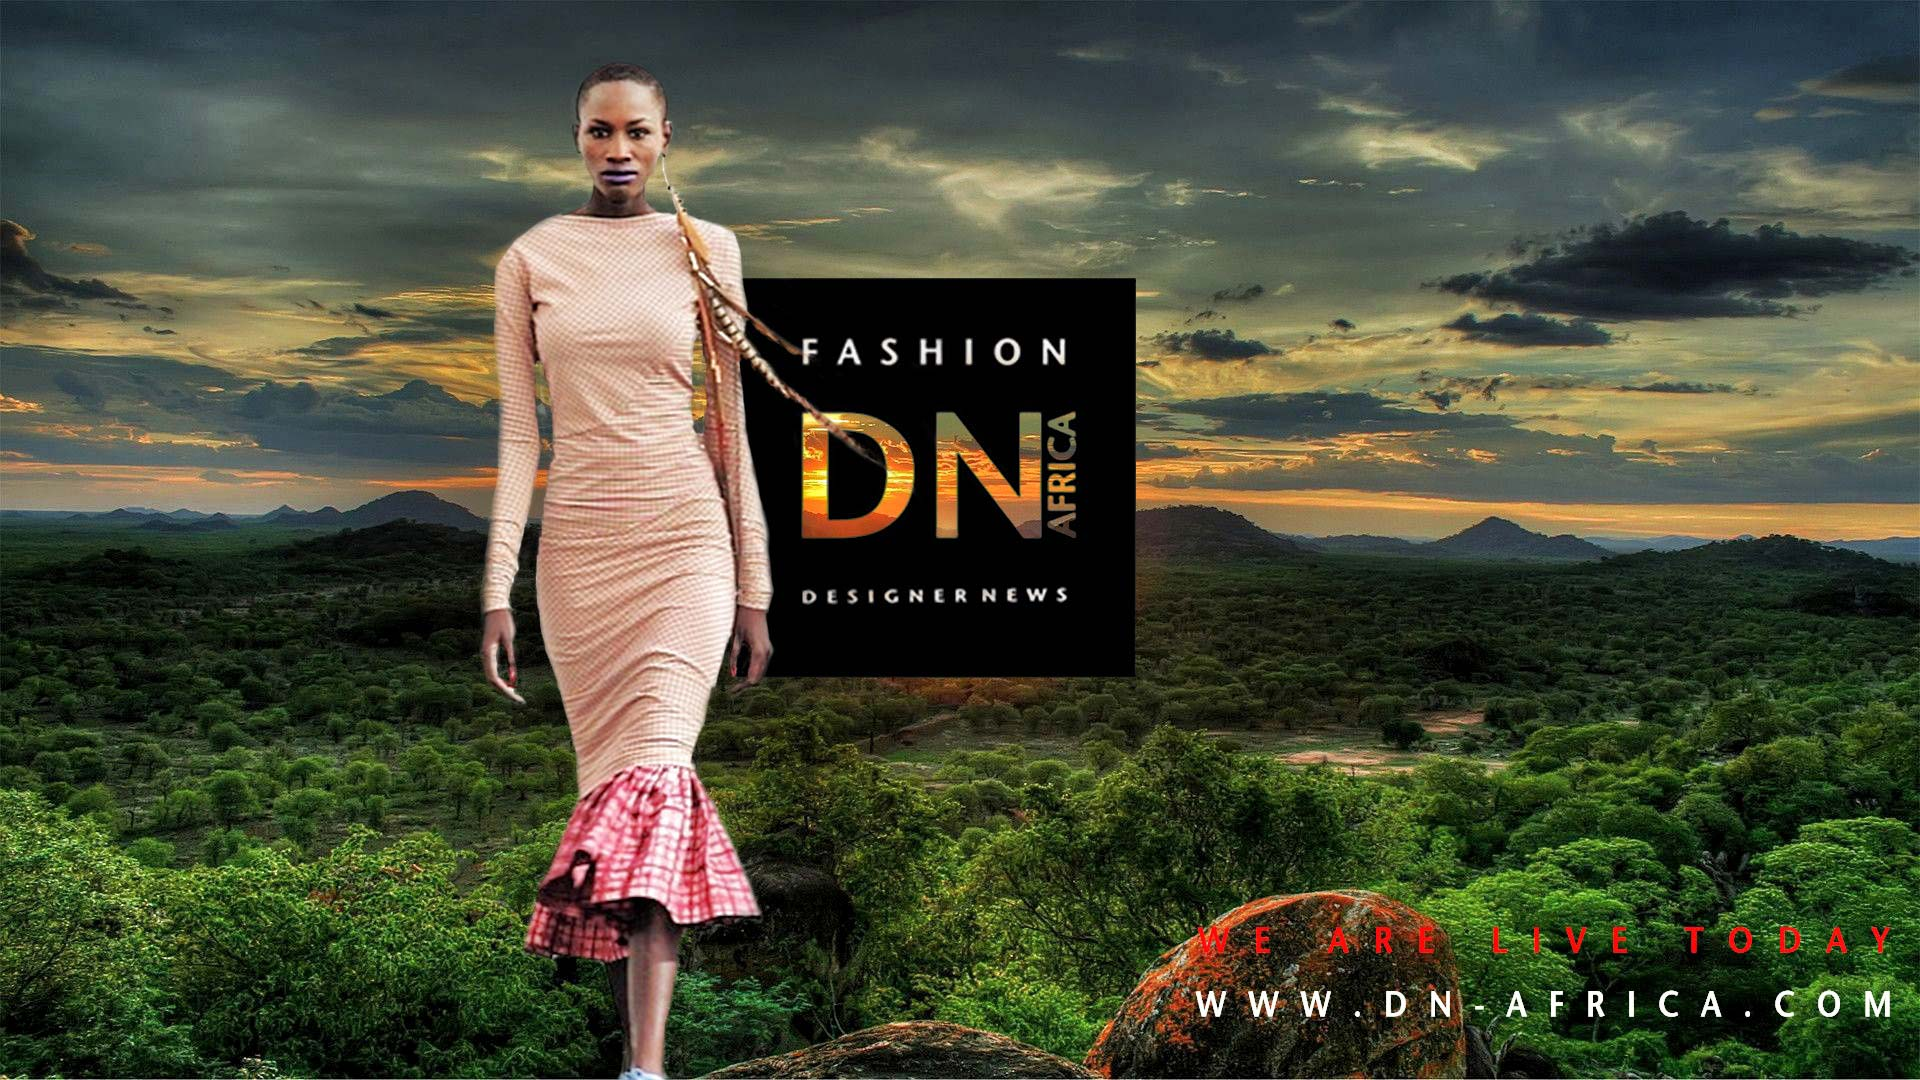 DN Africa is Live! Today.